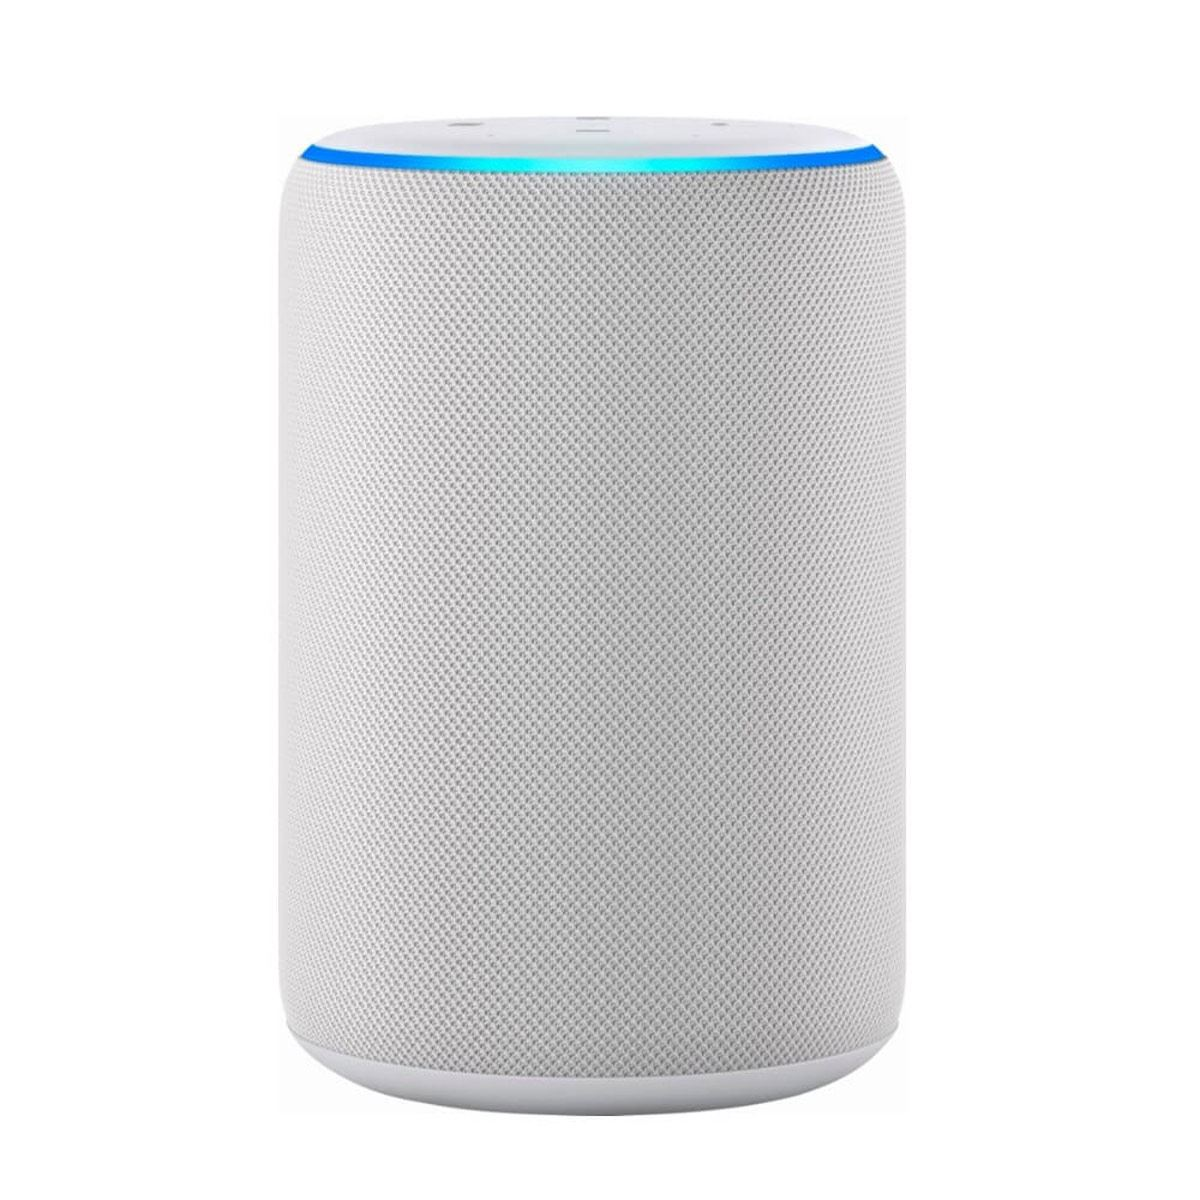 Echo Plus Premium Sound Alexa Blanco